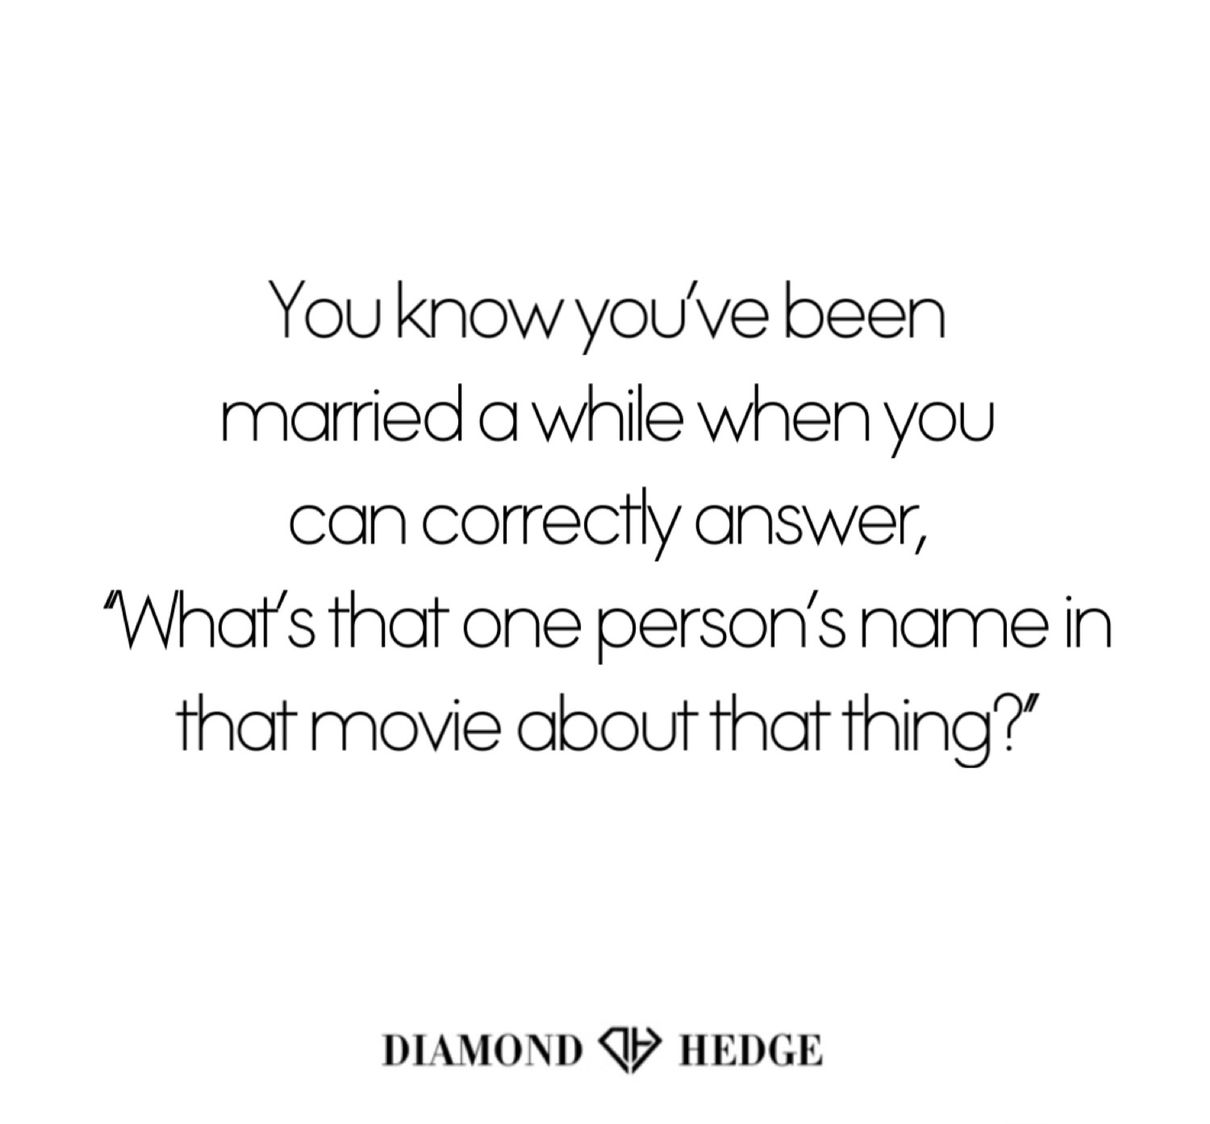 •Try On. •Compare. •Purchase. . . . #funny #engagementring #engagement #diamonds #diamondrings #diamondhedge #wedding #weddingring #brides #ringstack #putaringonit #ringselfie #funnymemes #ringgoals #shesaidyes #isaidyes #proposal #marryme #ringoftheday #rings #love #howheasked #lovewins #ringsofinstagram #couplegoals #relationshipgoals #harrywinston #tiffanyandco #funnyquotes